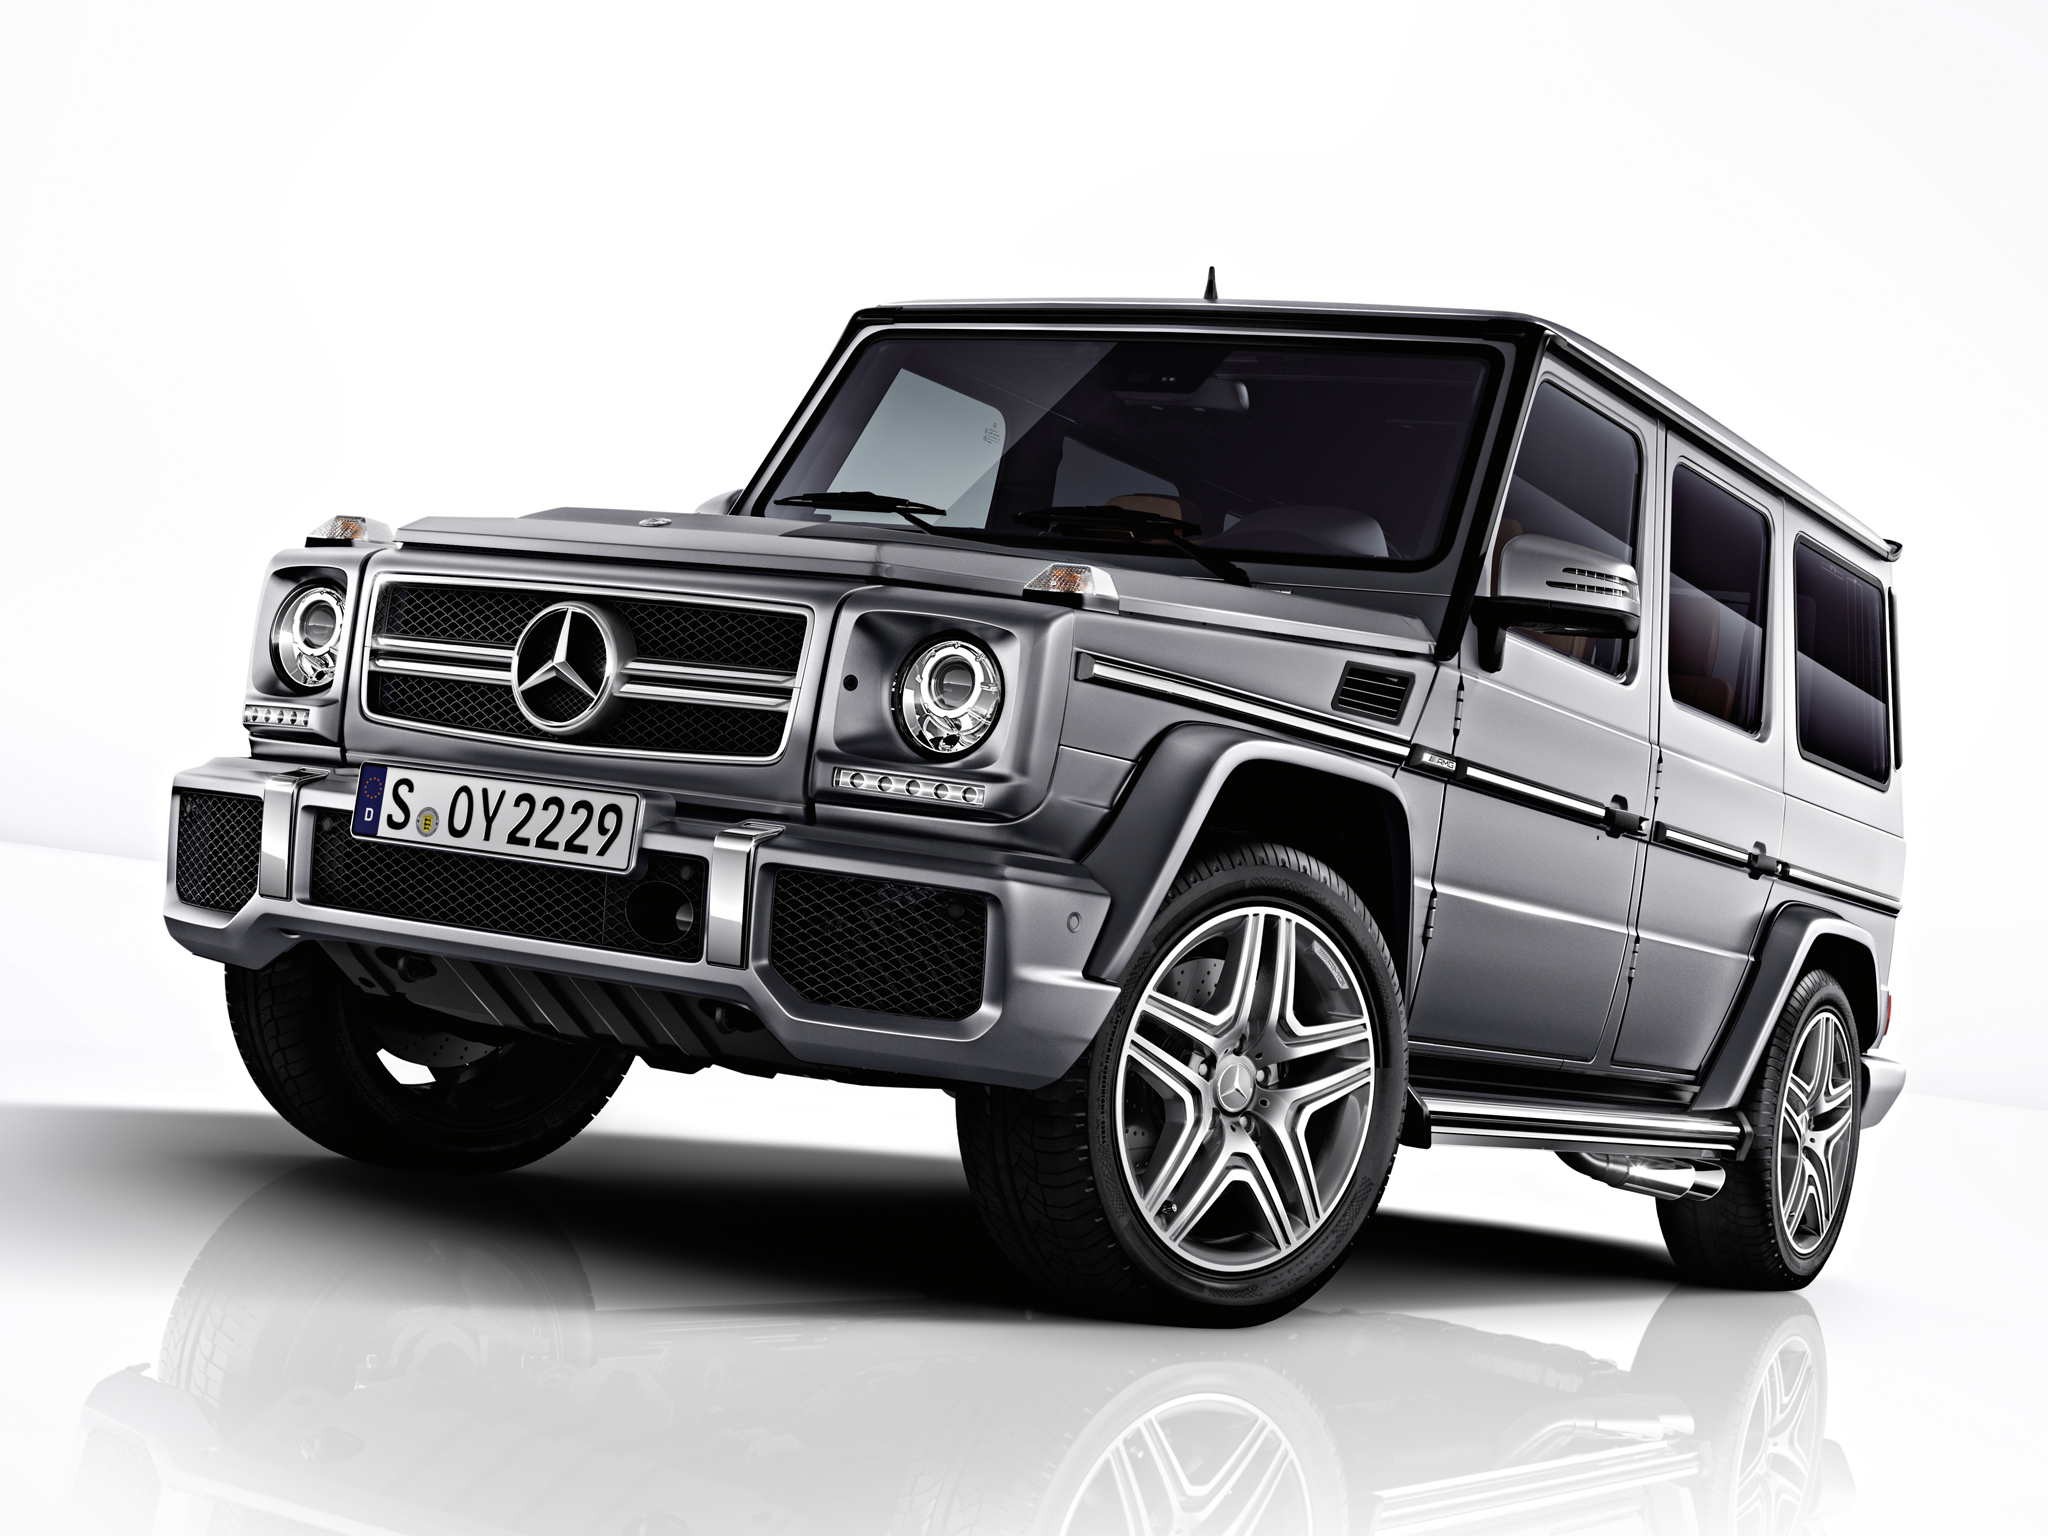 Mercedes benz g class amg photos reviews news specs for Mercedes benz g class suv price